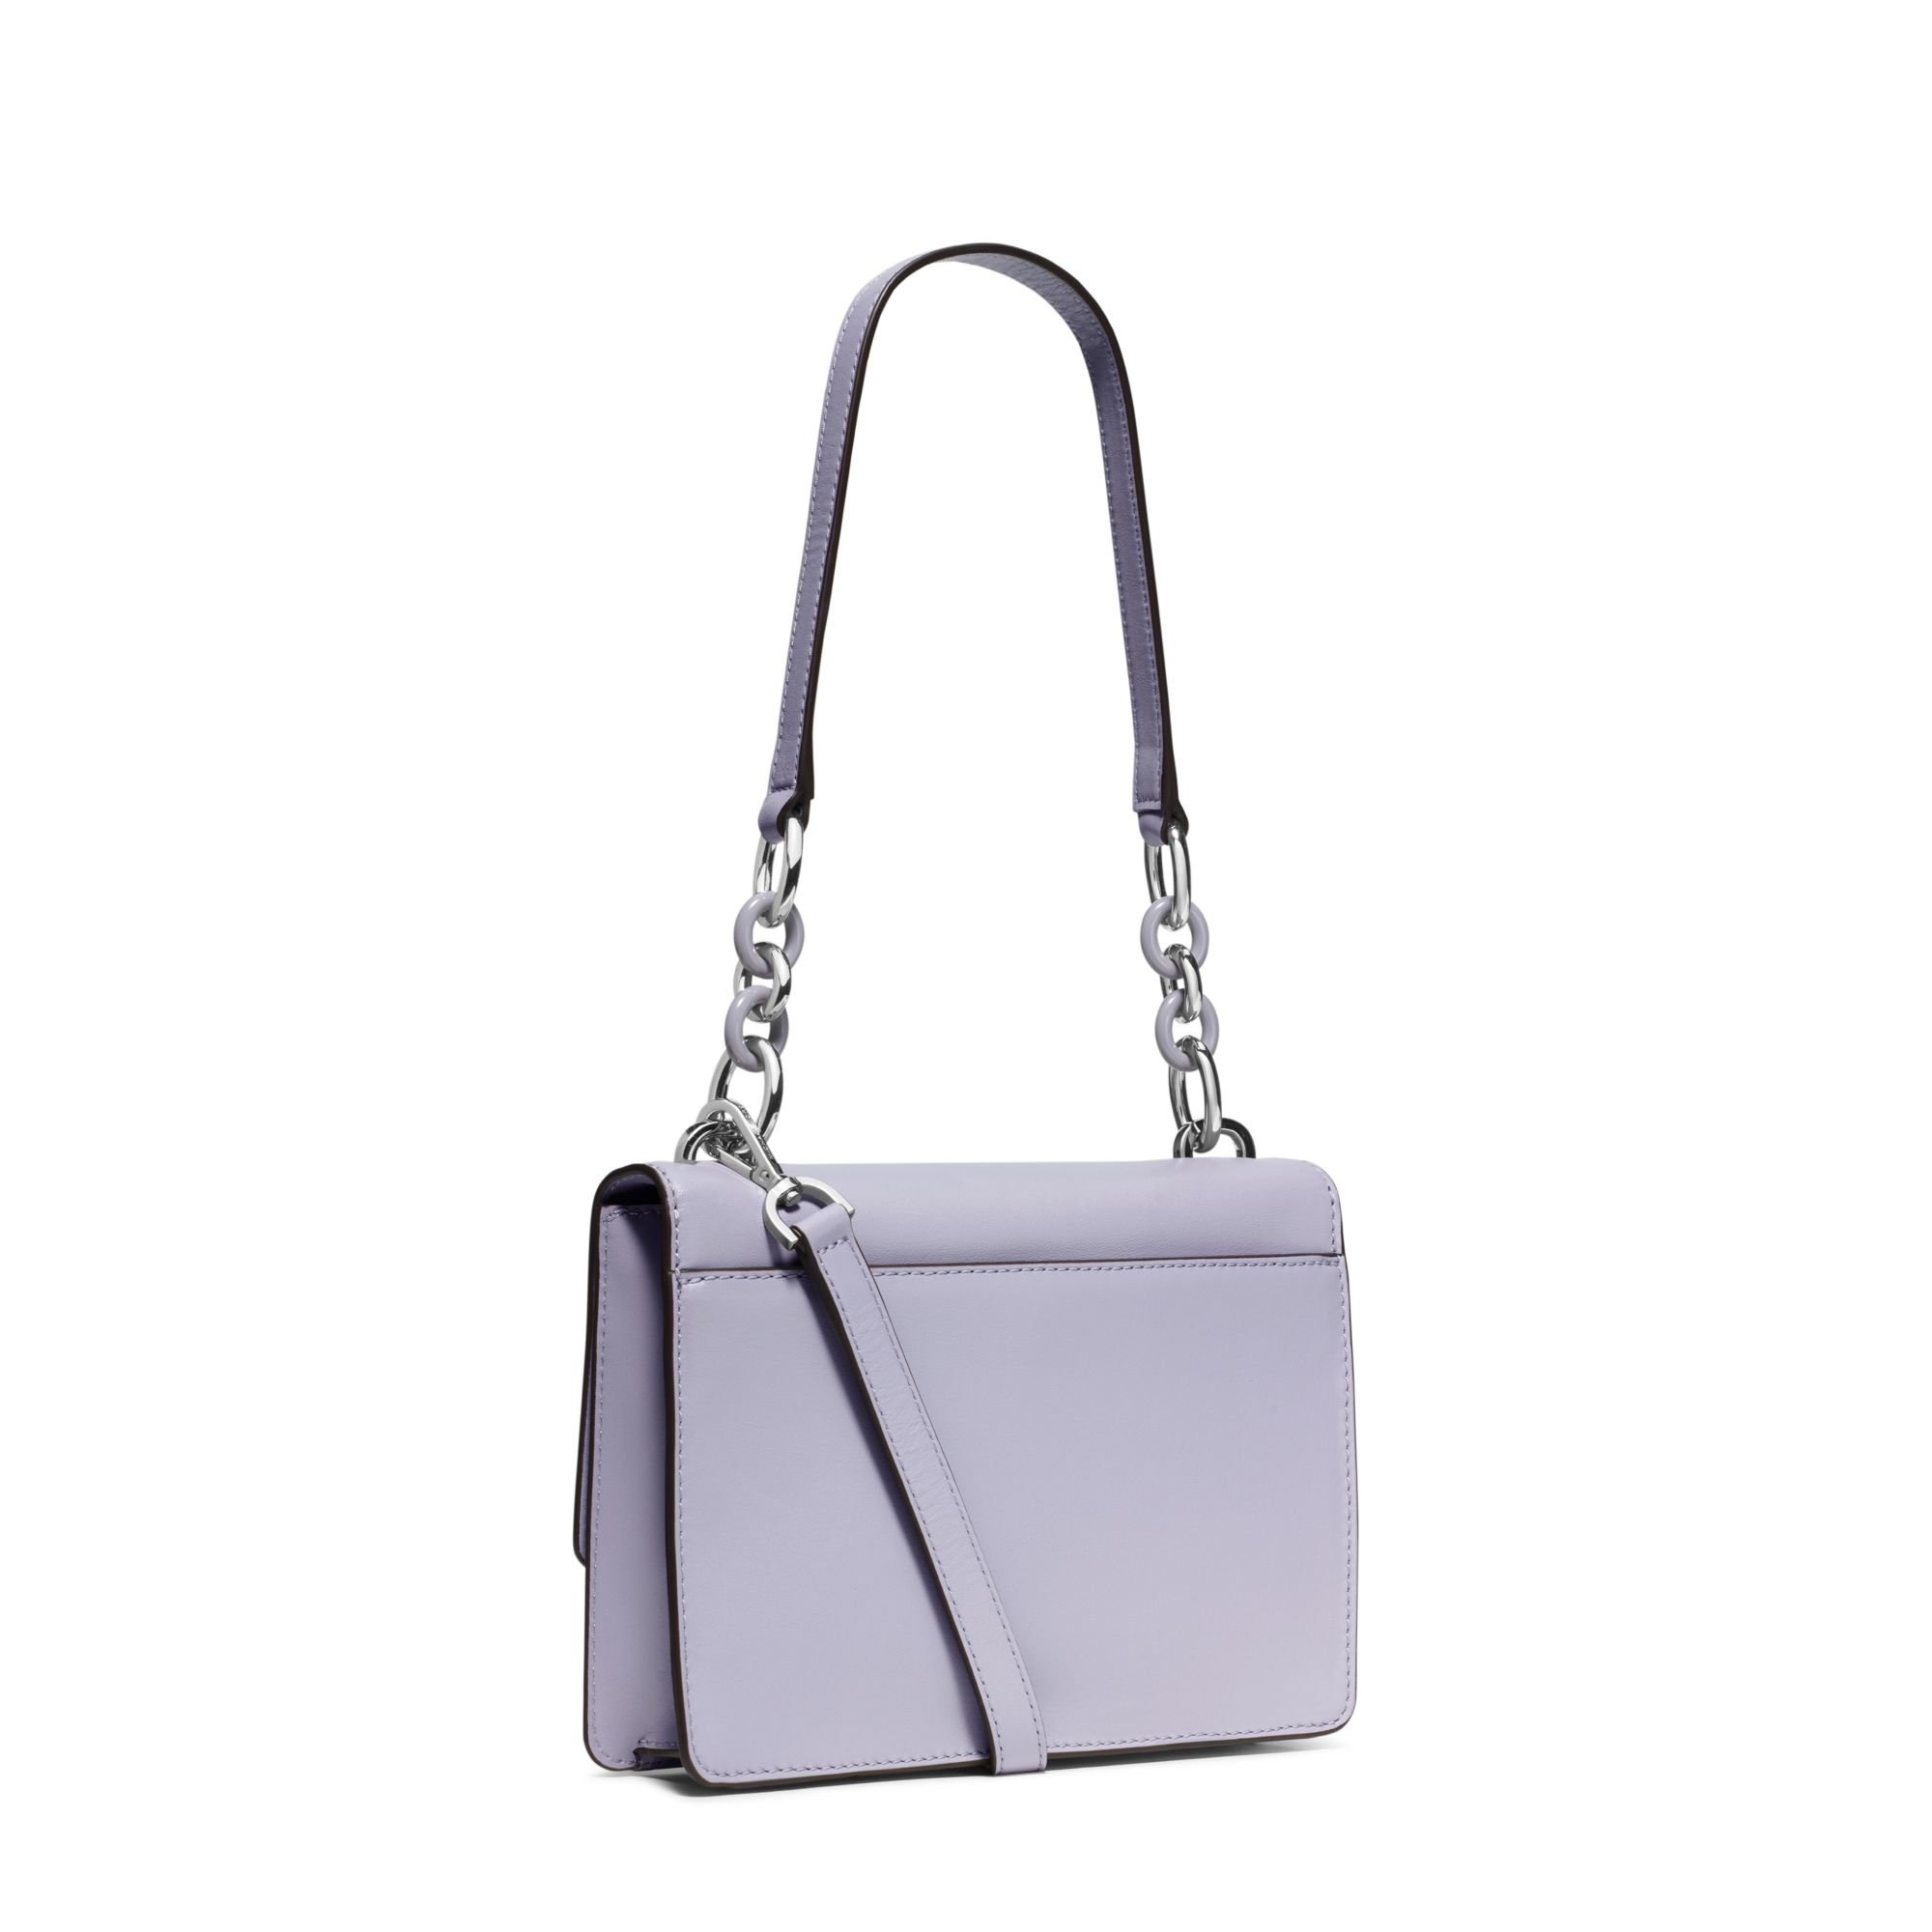 Michael kors Cynthia Small Leather Shoulder Bag in Purple | Lyst